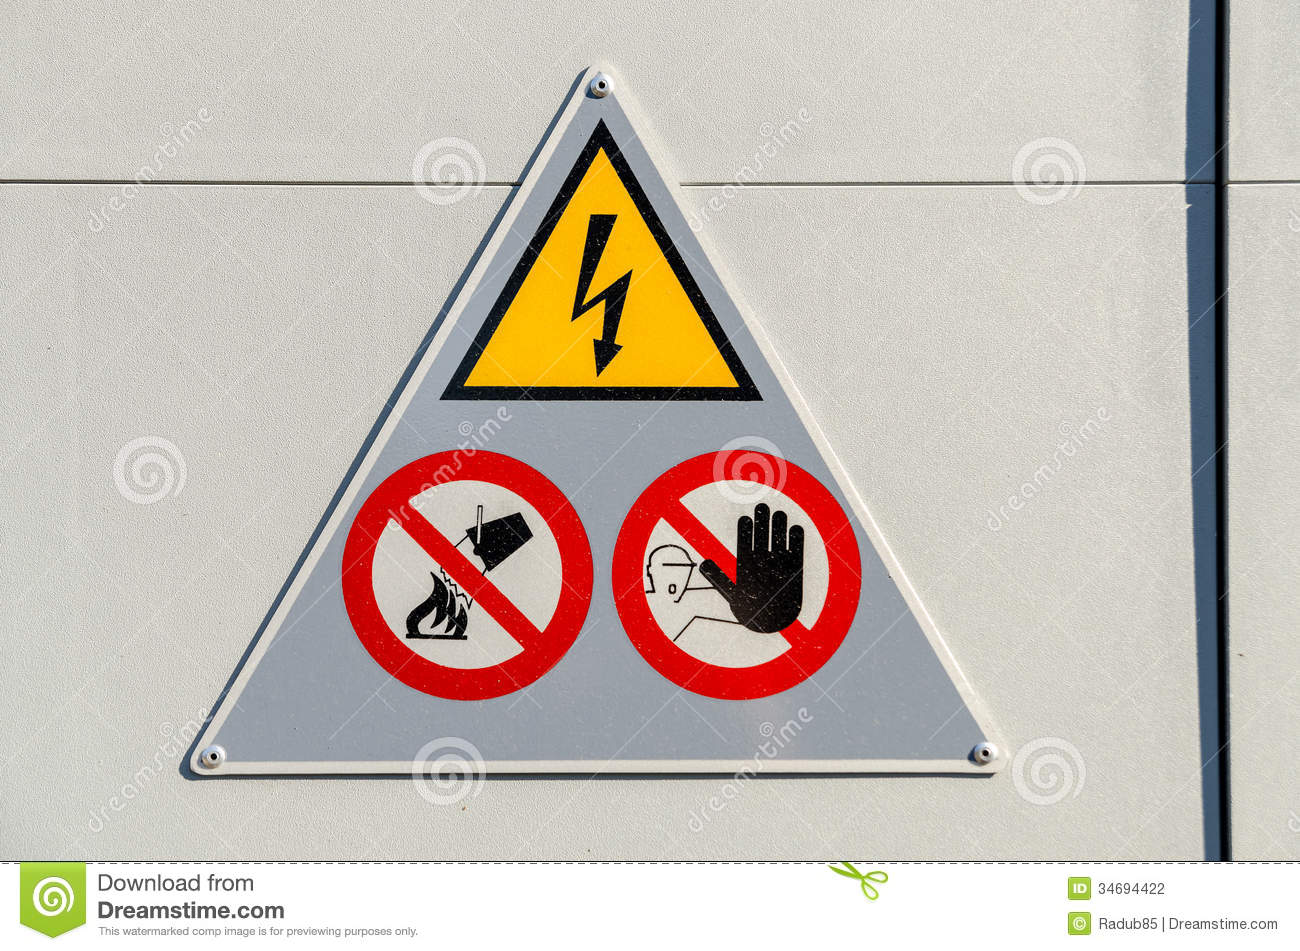 High voltage danger sign stock photo image of death 34694422 high voltage danger sign buycottarizona